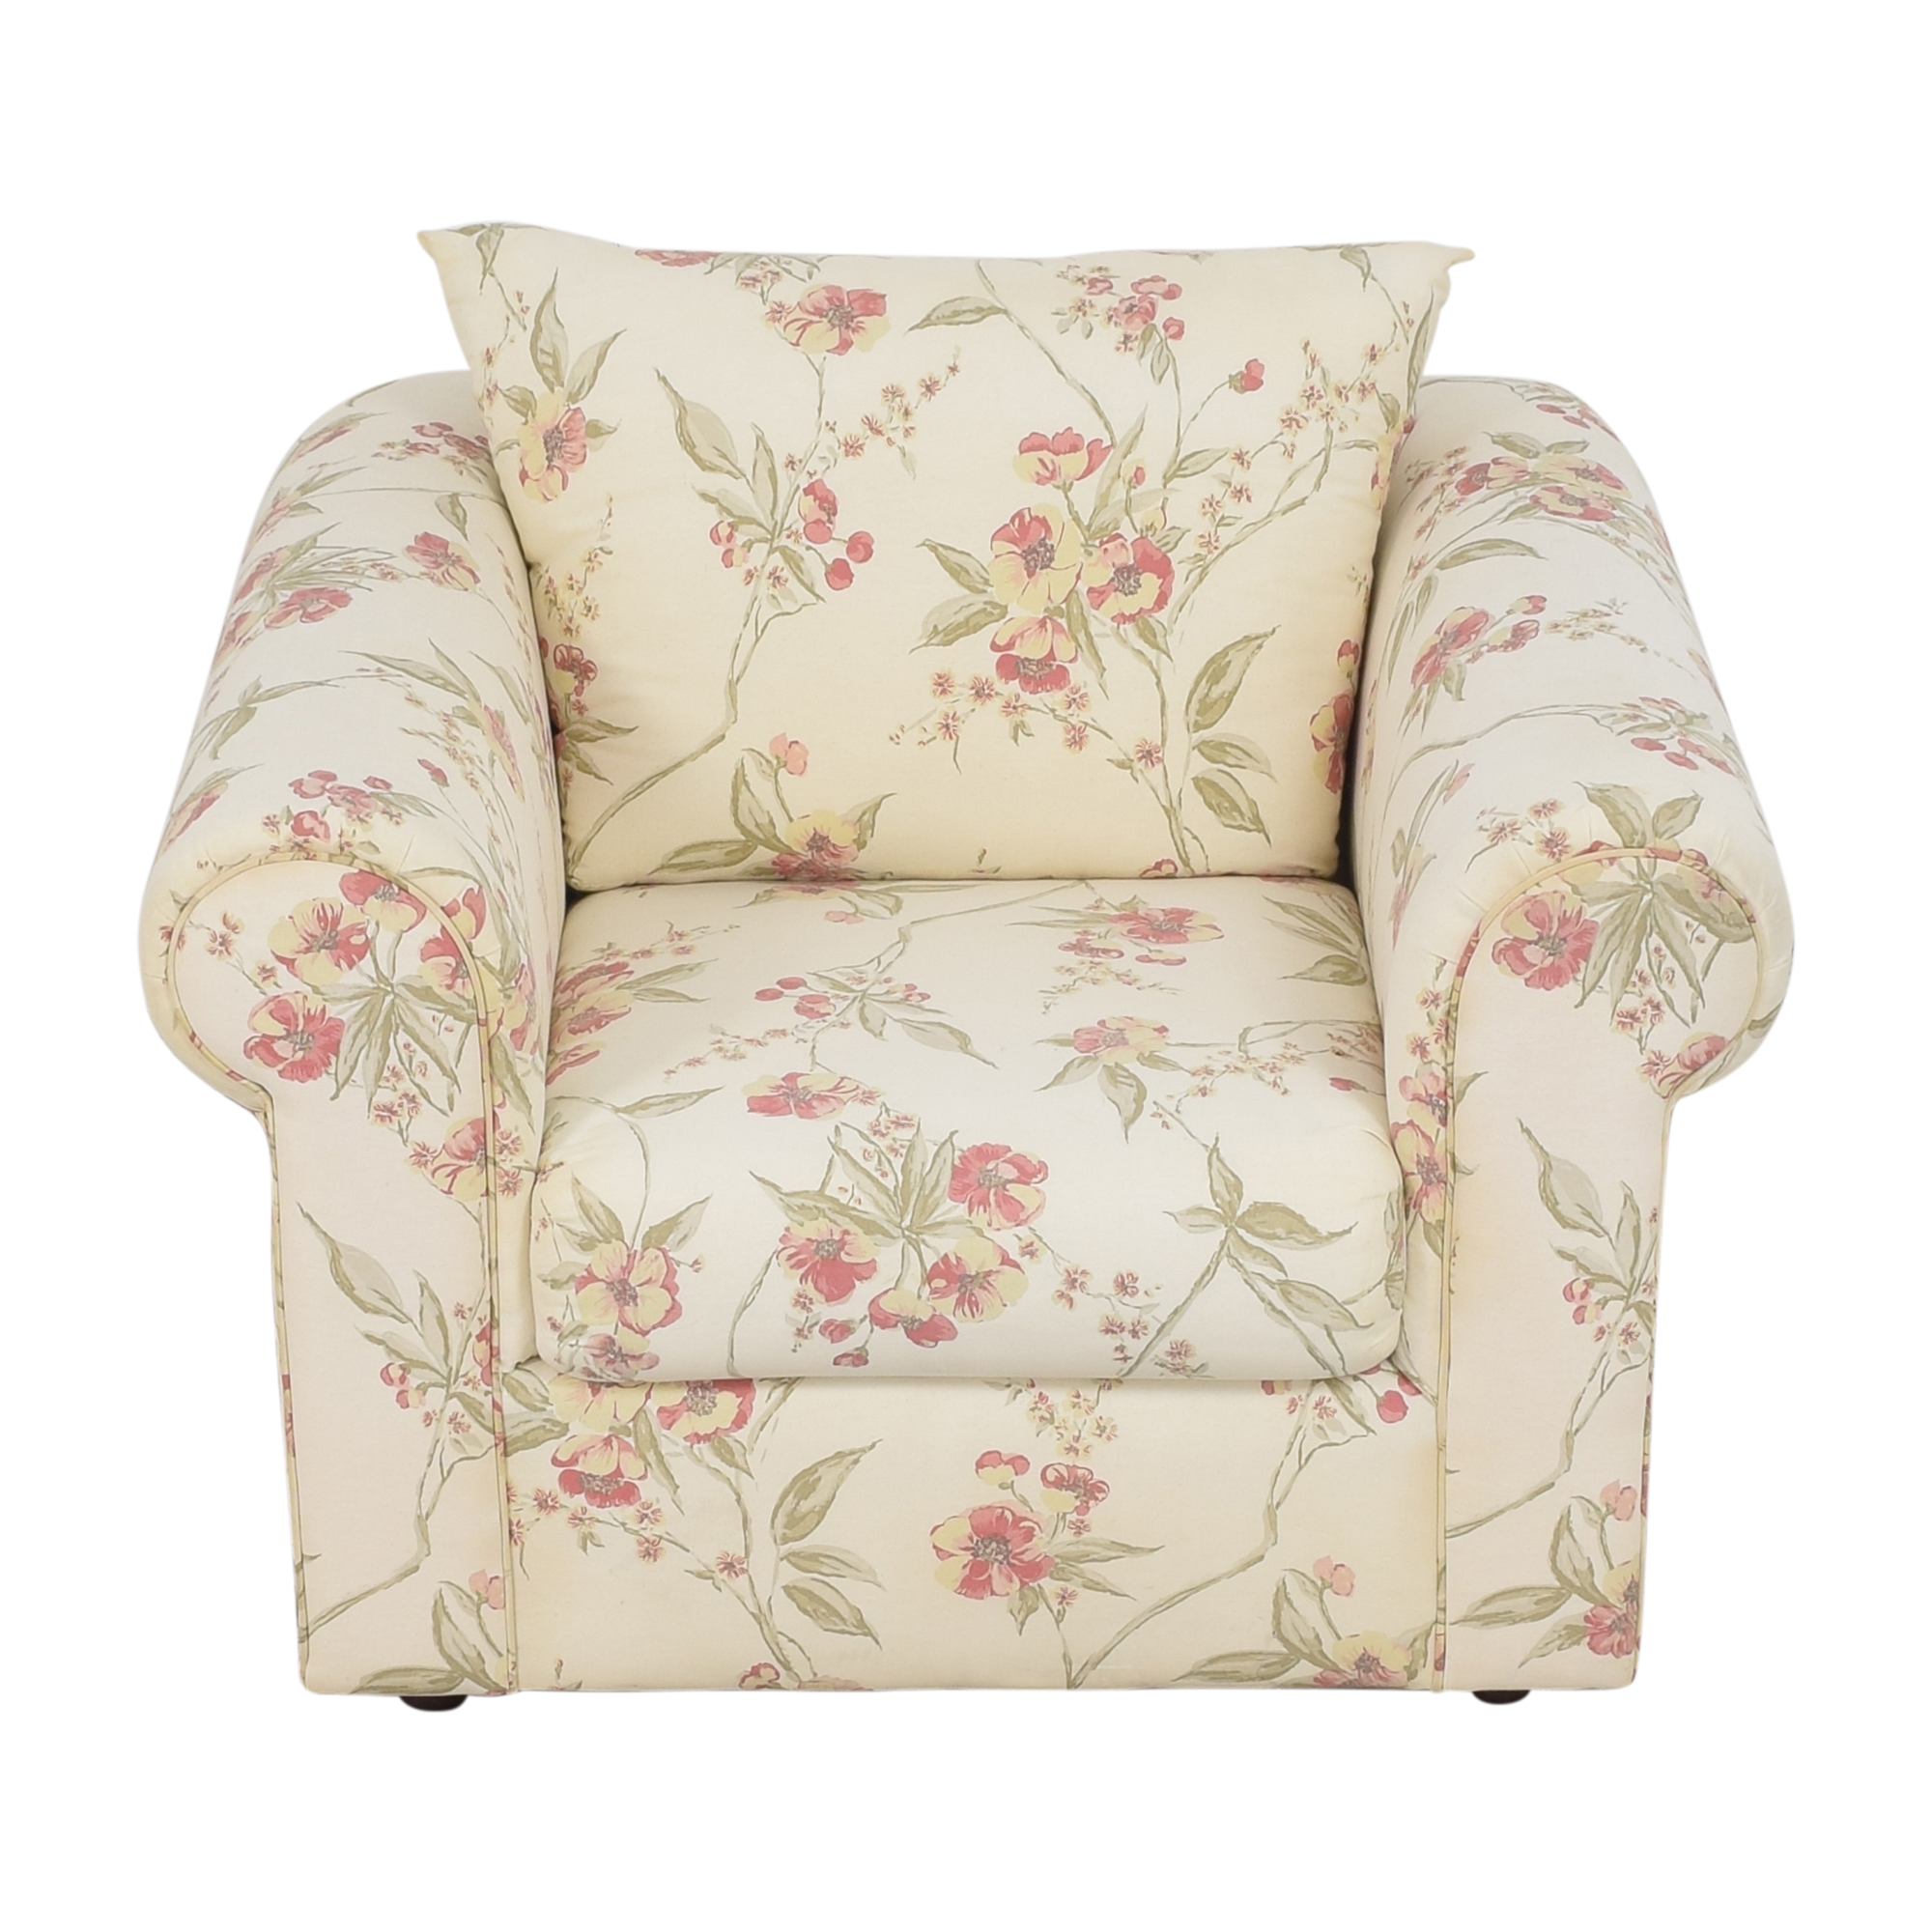 Ellis Home Furnishings Ellis Home Furnishings Floral Accent Chair pa